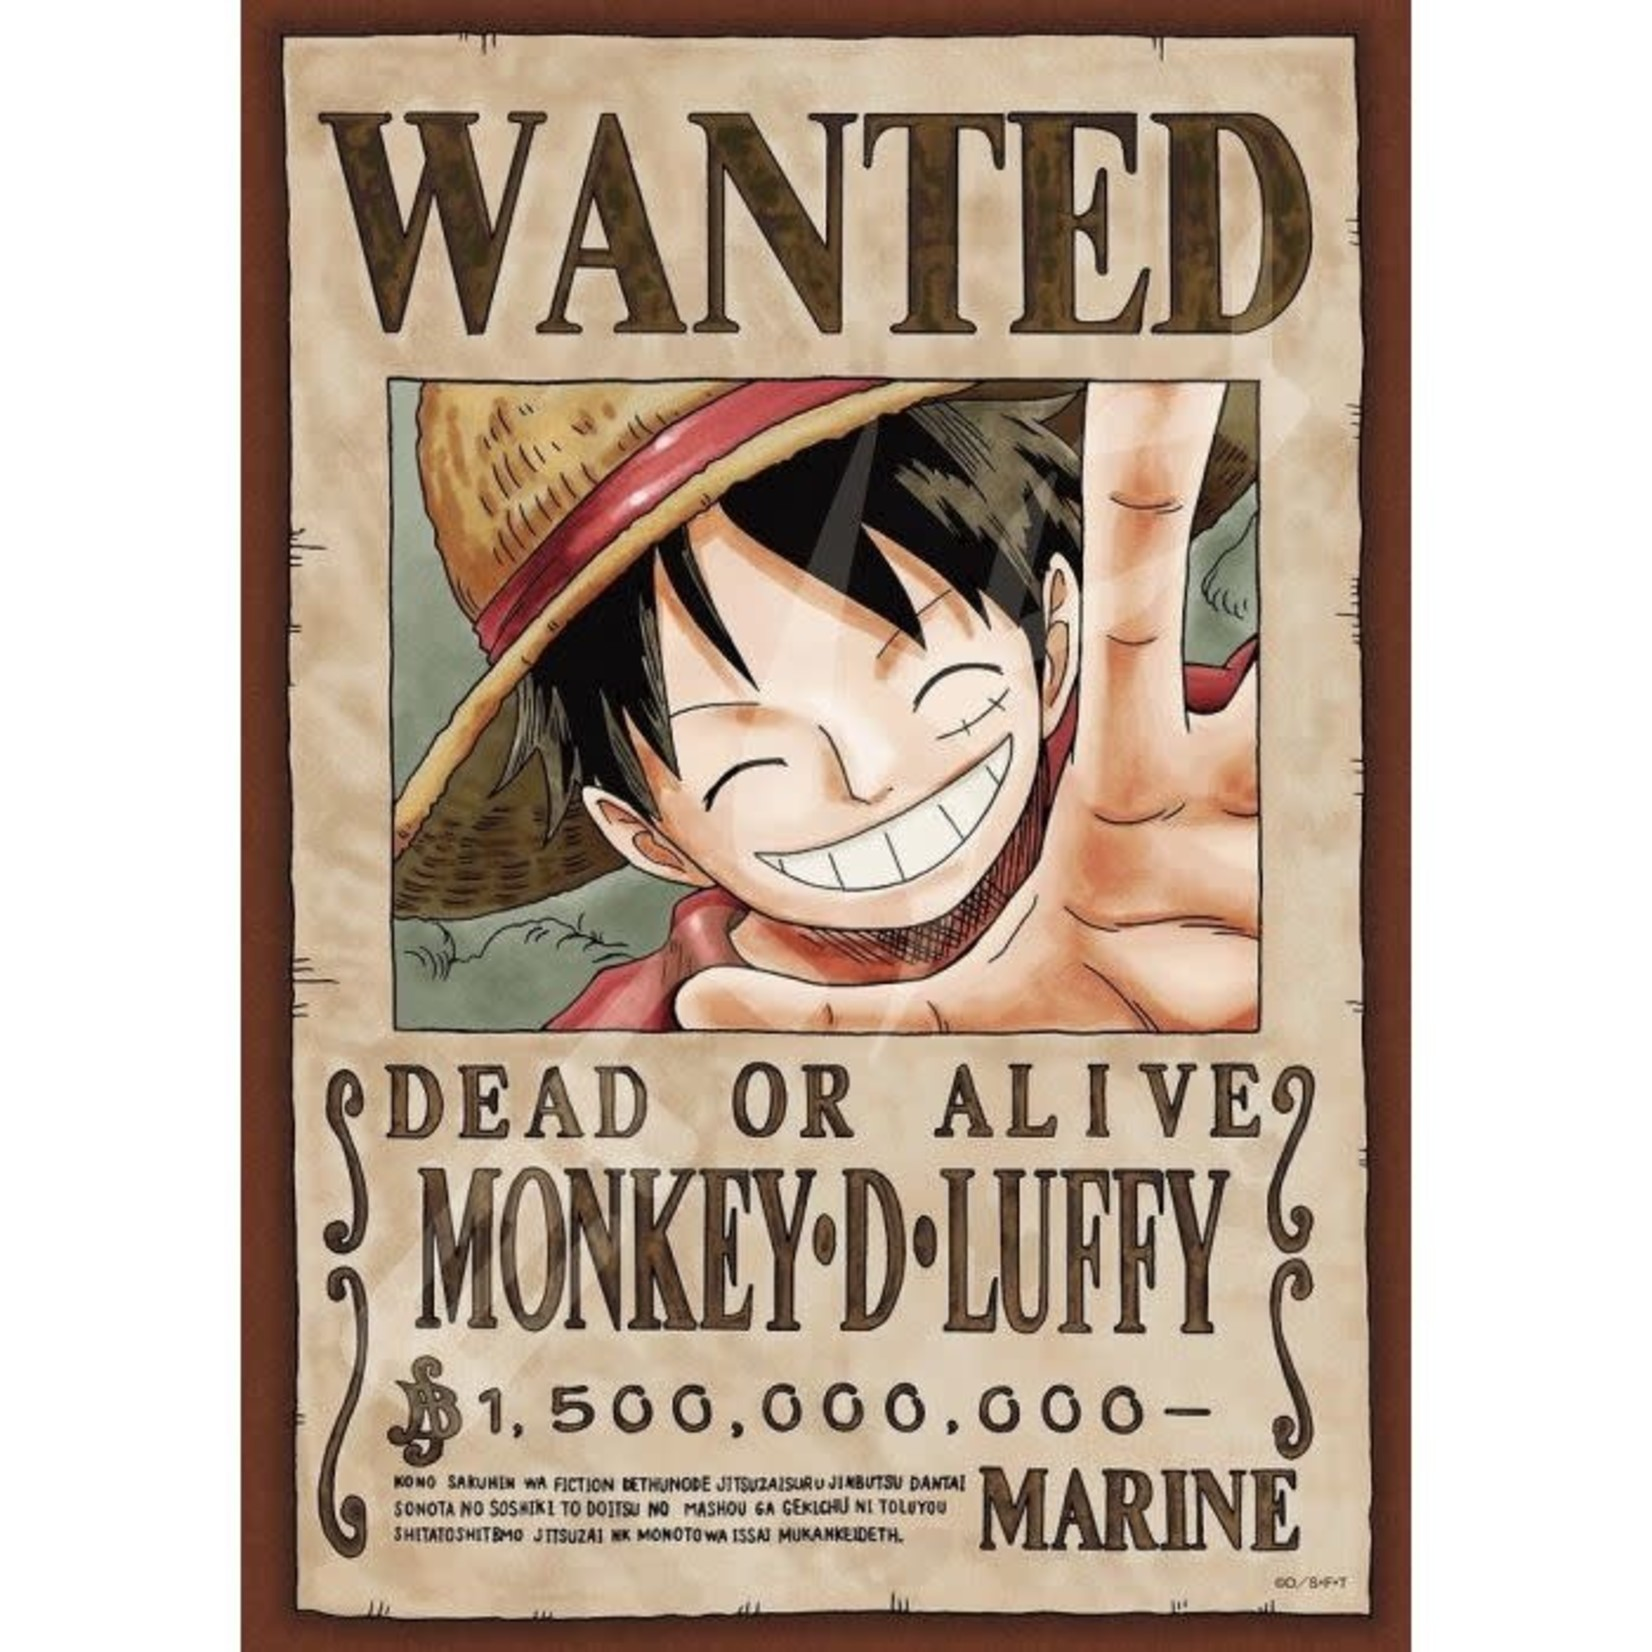 JIGSAW PUZZLE ONE PIECE: WANTED POSTER MONKEY D. LUFFY 208PCS (NO.208-034: 182MM X 257MM)